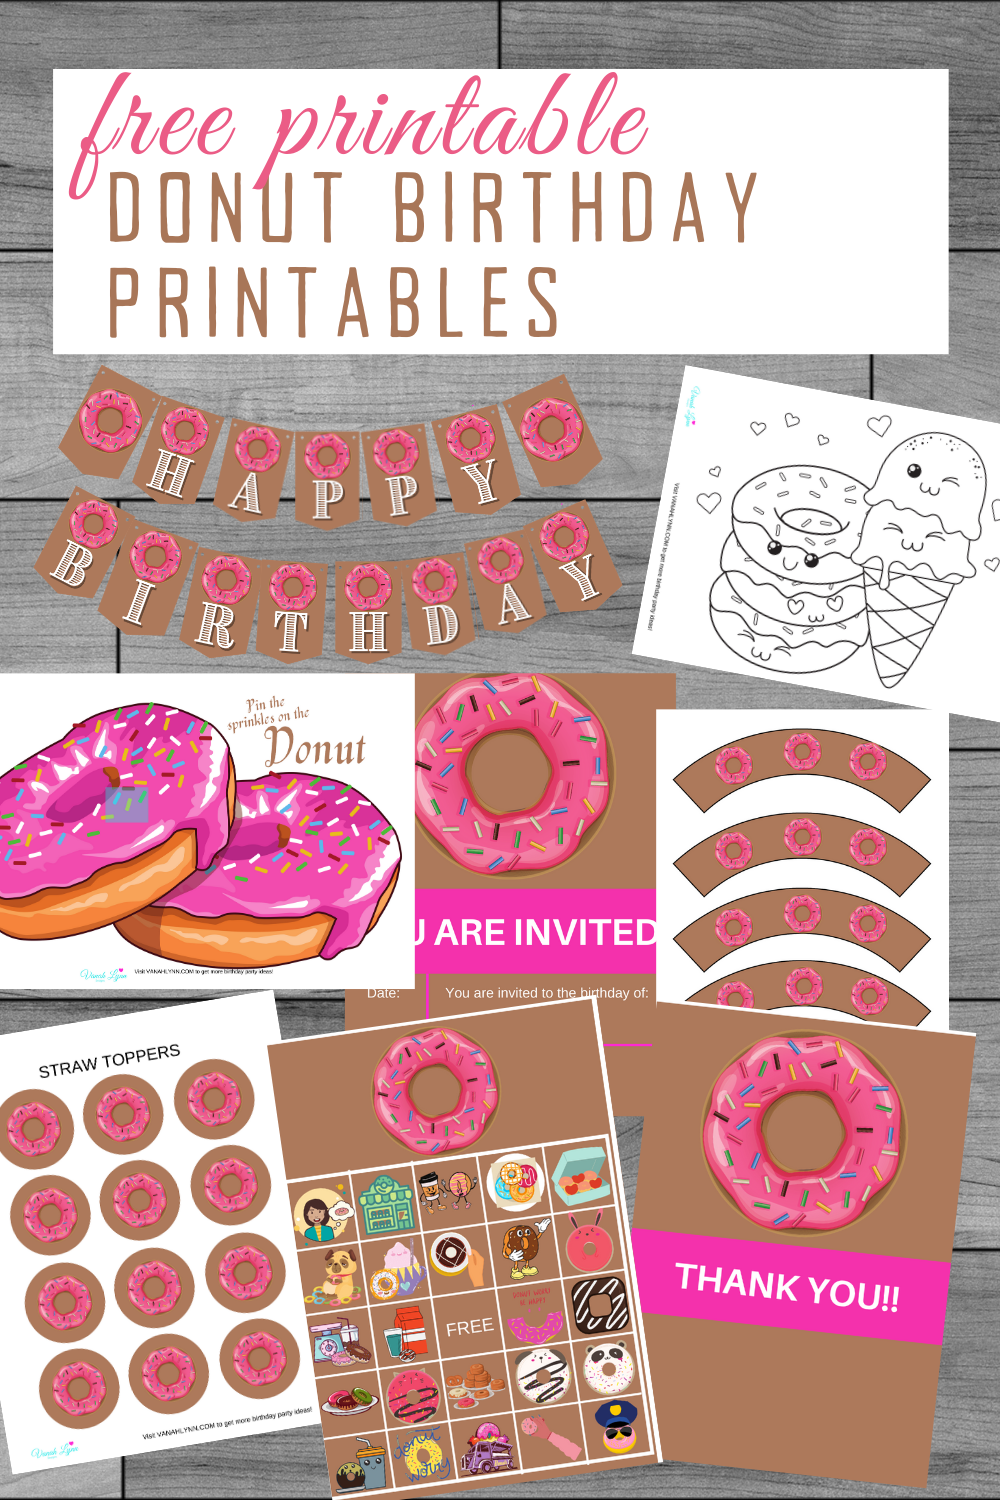 one year old birthday party ideas and free printable birthday party supplies